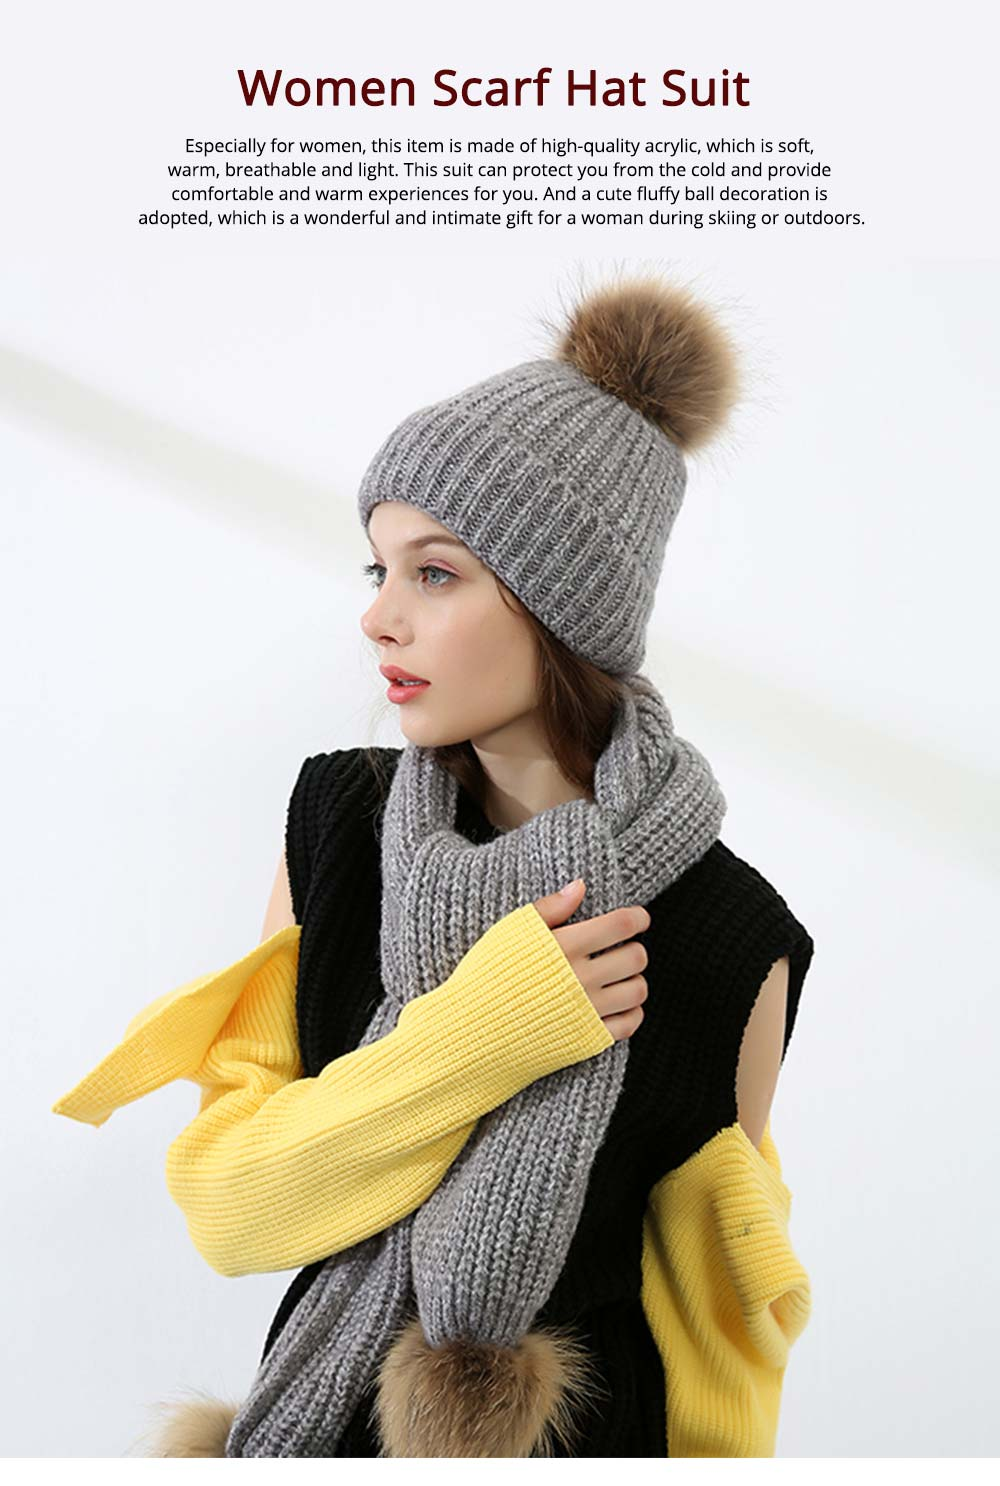 Women Beanie Hat Scarf Set with Fluffy Decorative Ball, Warm Winter Thicken Outdoor Skiing Knitted Cap Scarf Suit 7